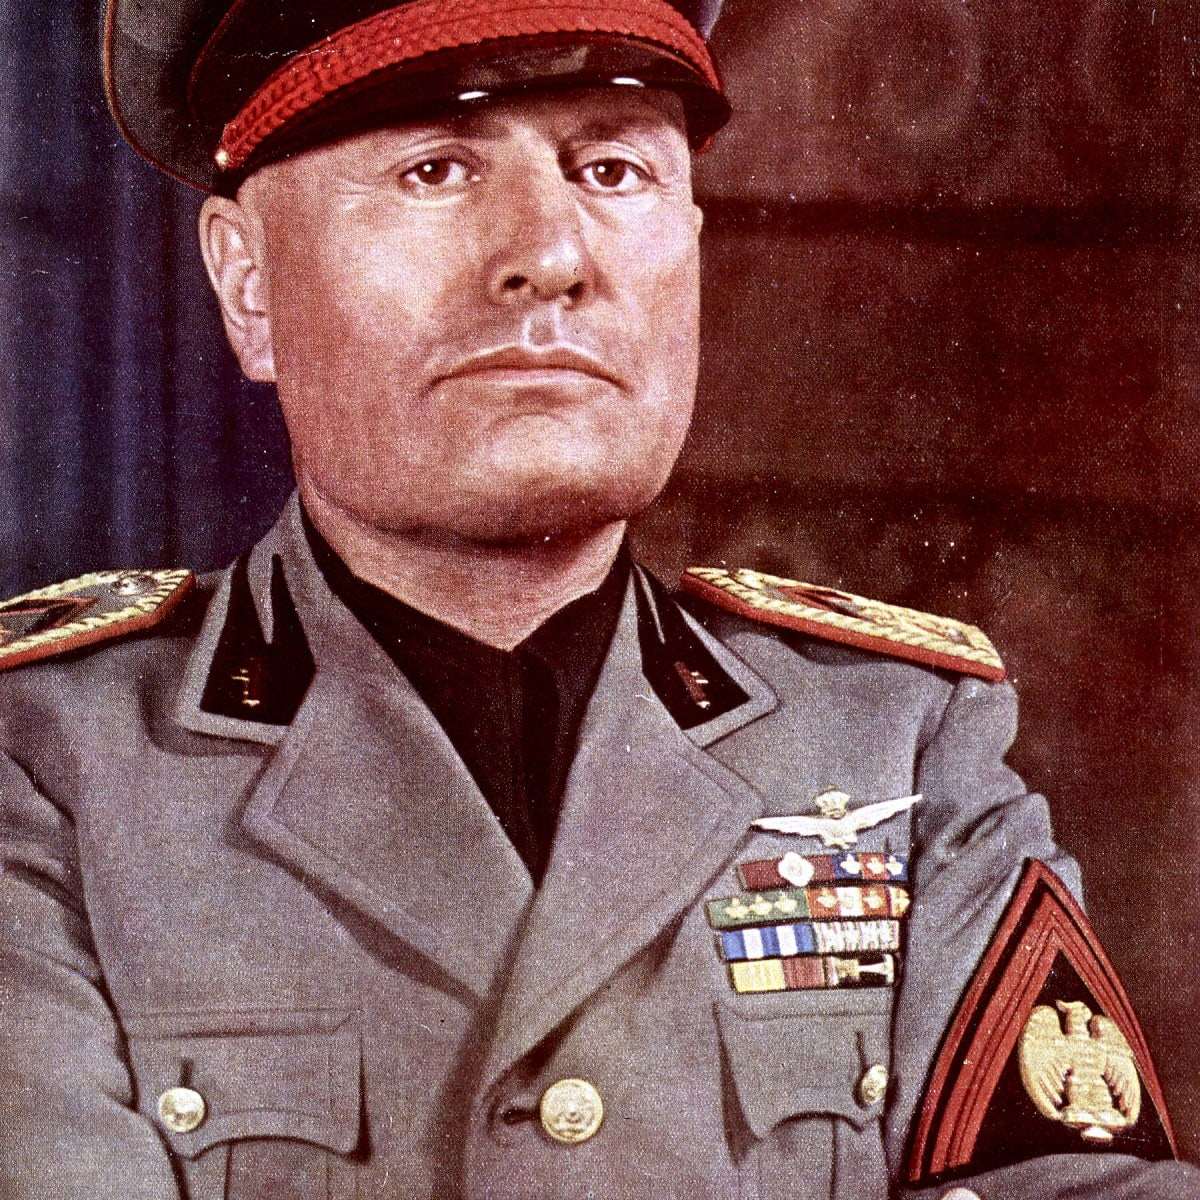 Mussolini's Final Hours - HISTORY